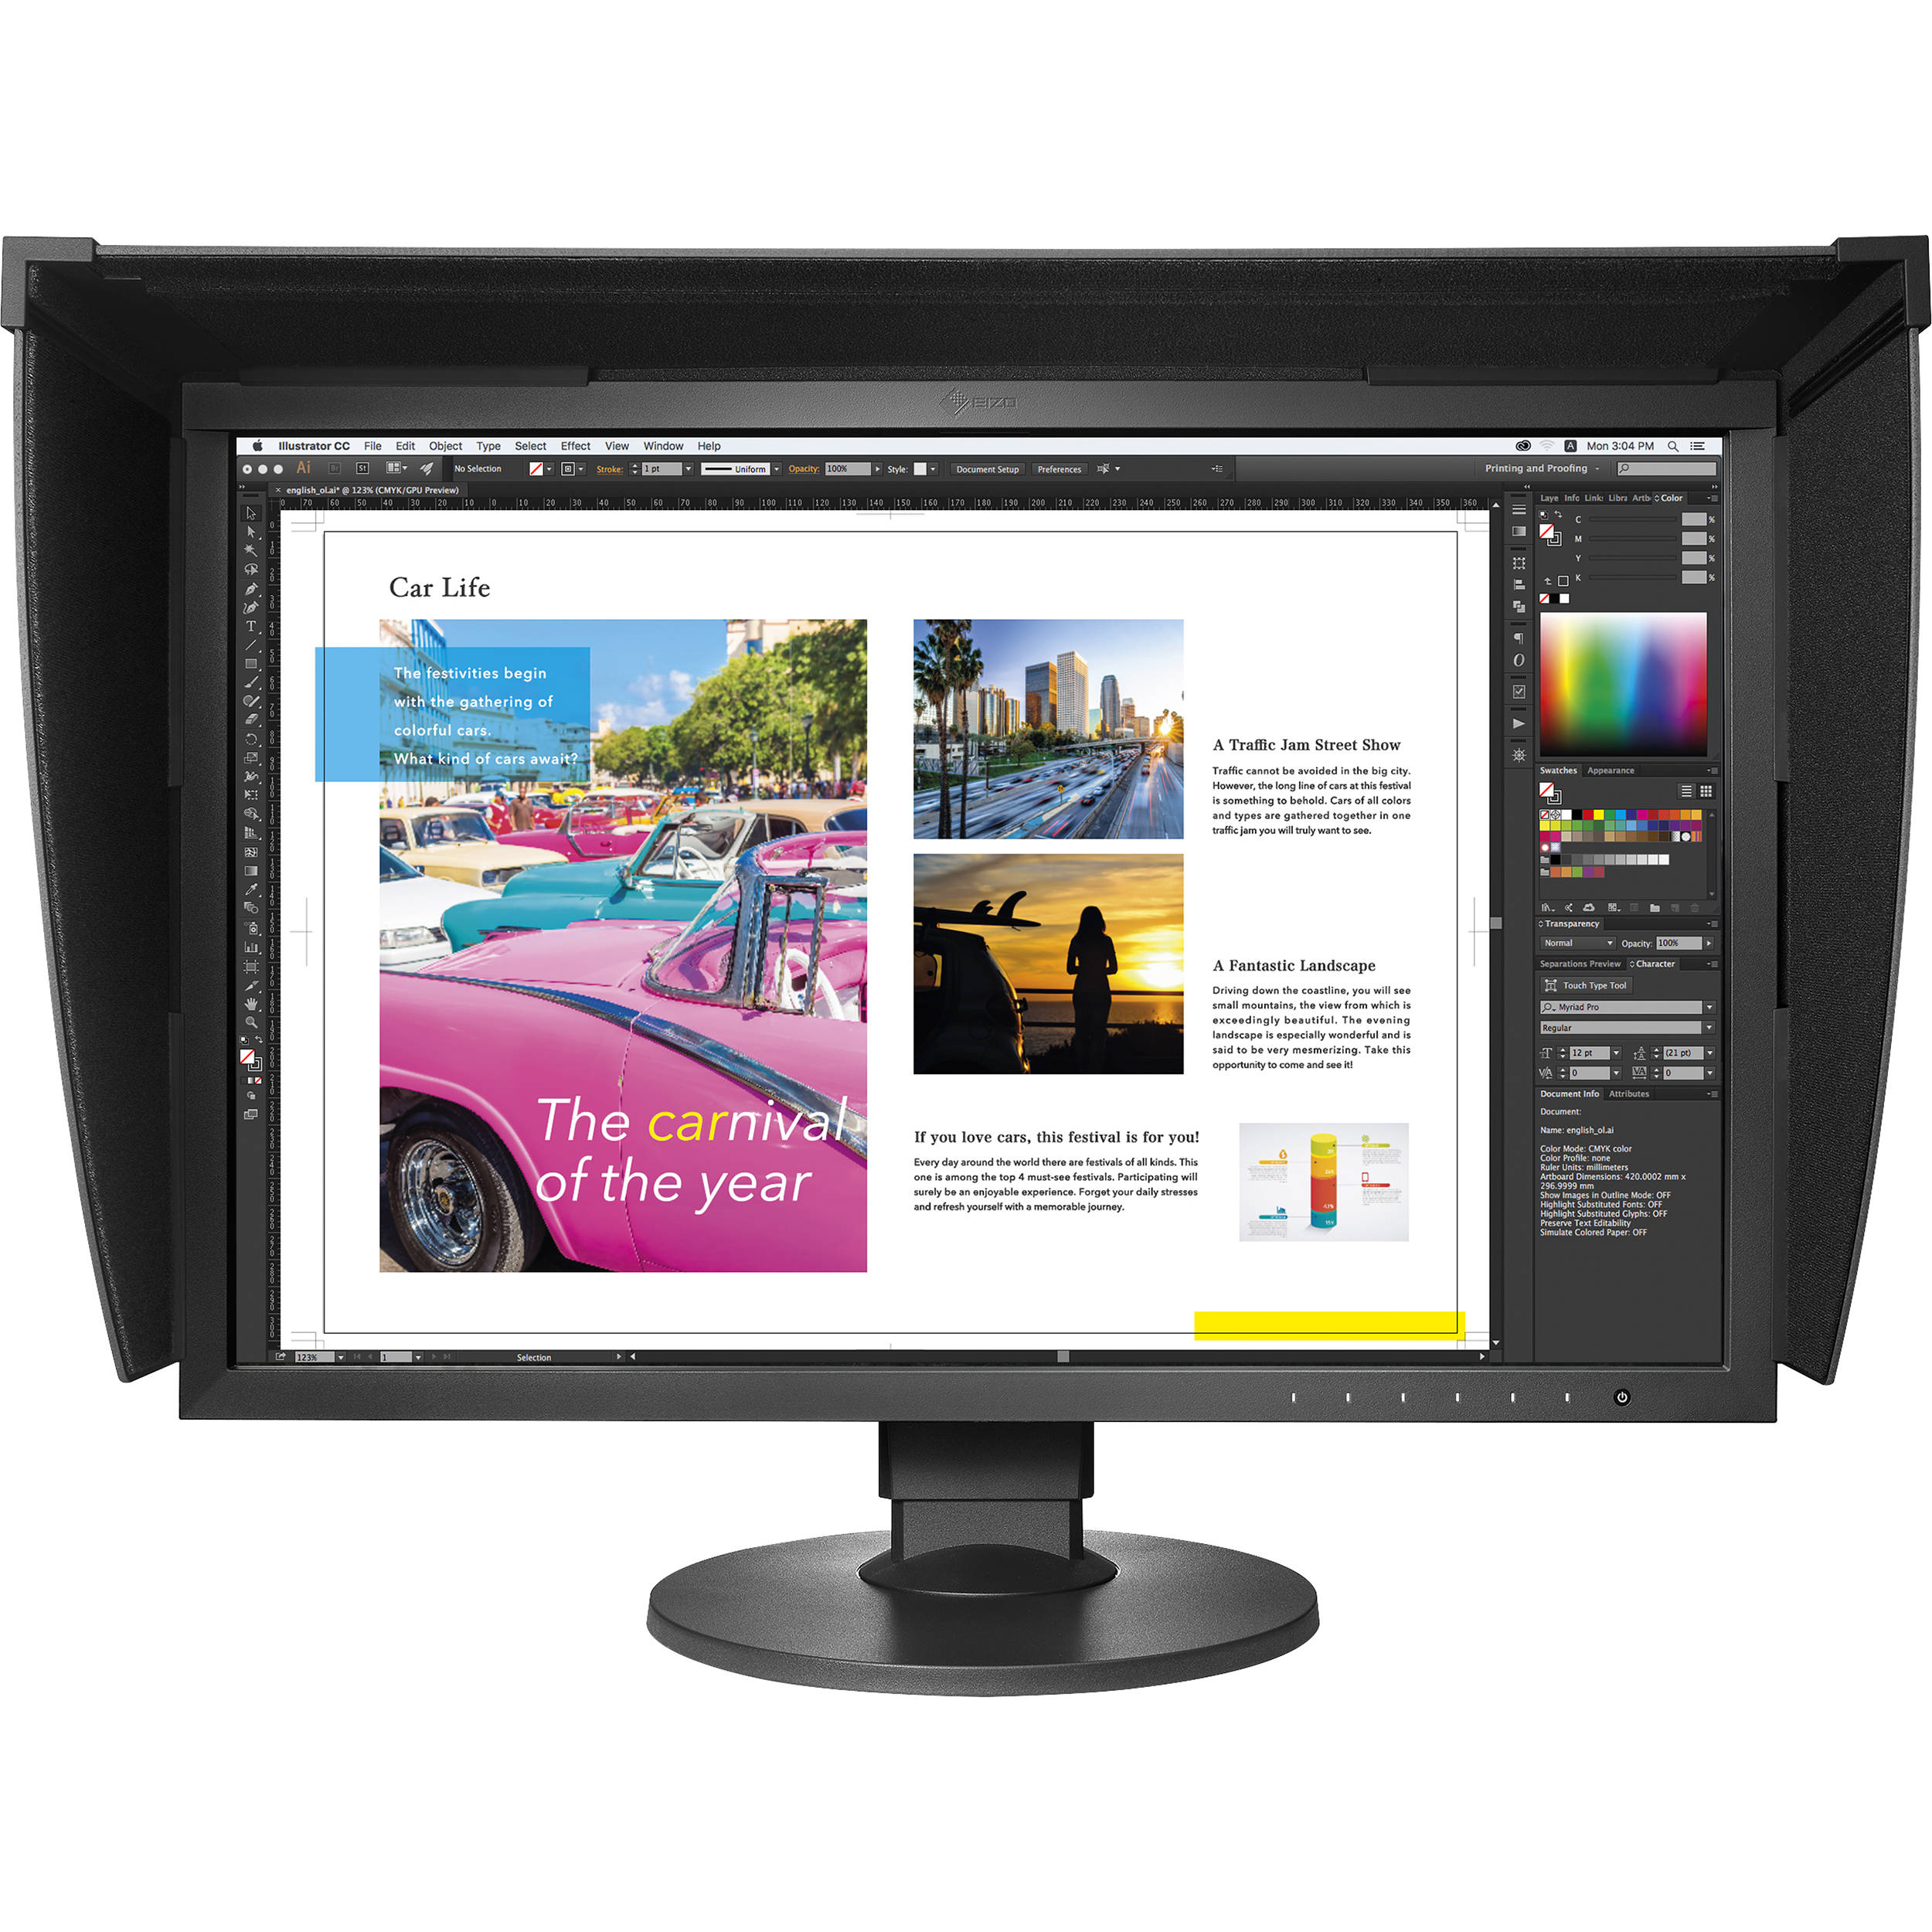 New Driver: EIZO LCD Screen Adjustment